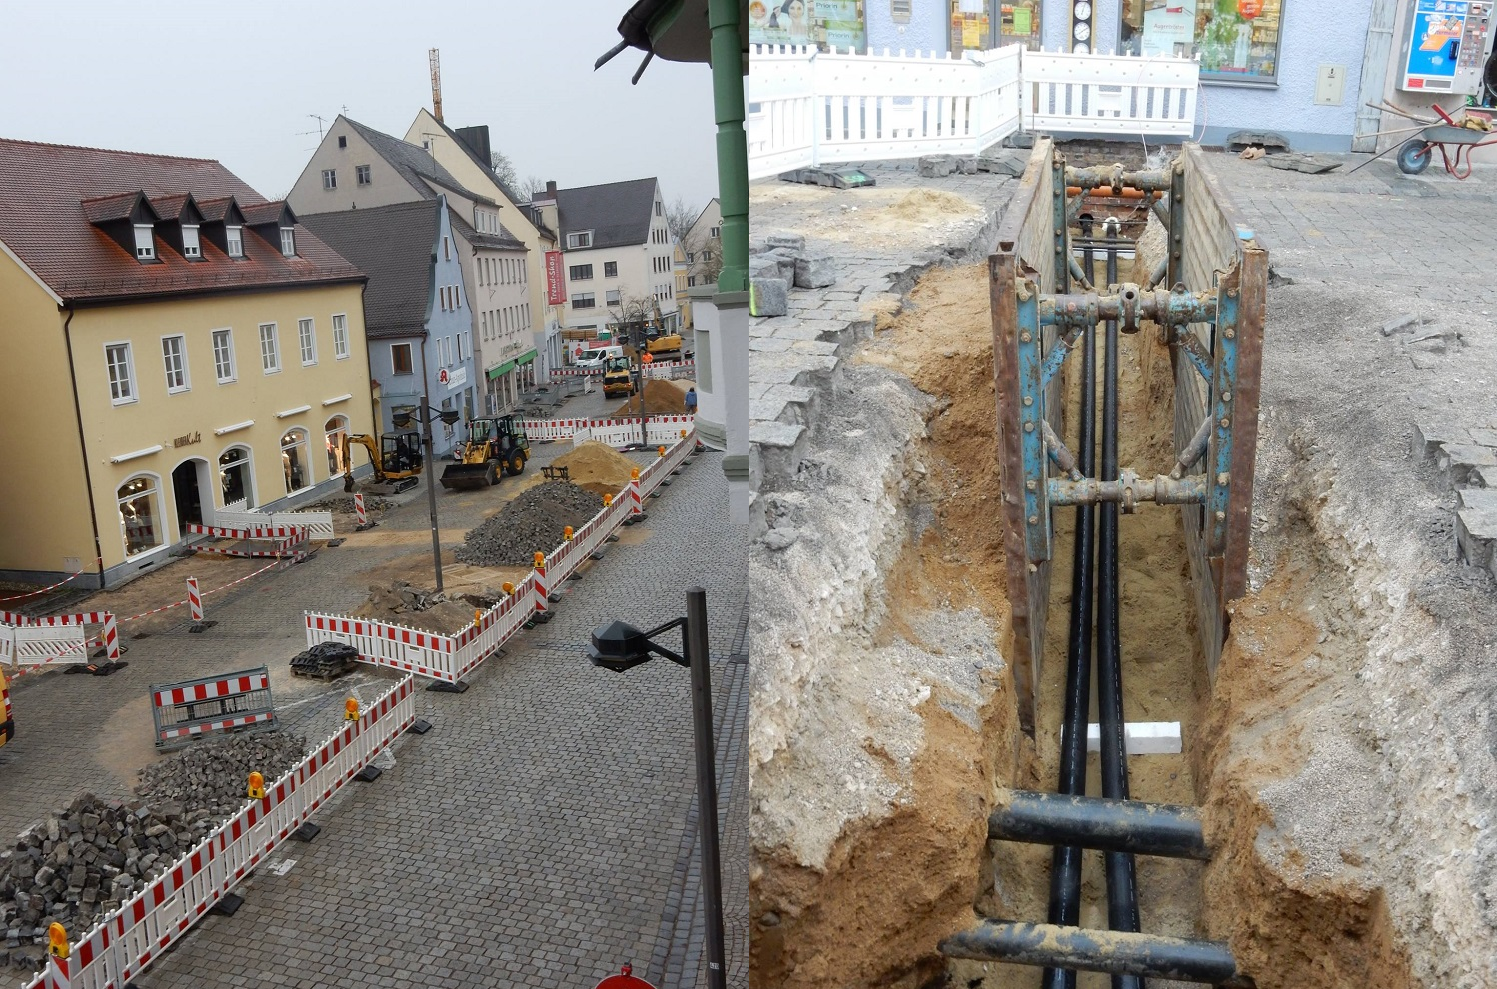 baustelle_stand_04.04.2017.png